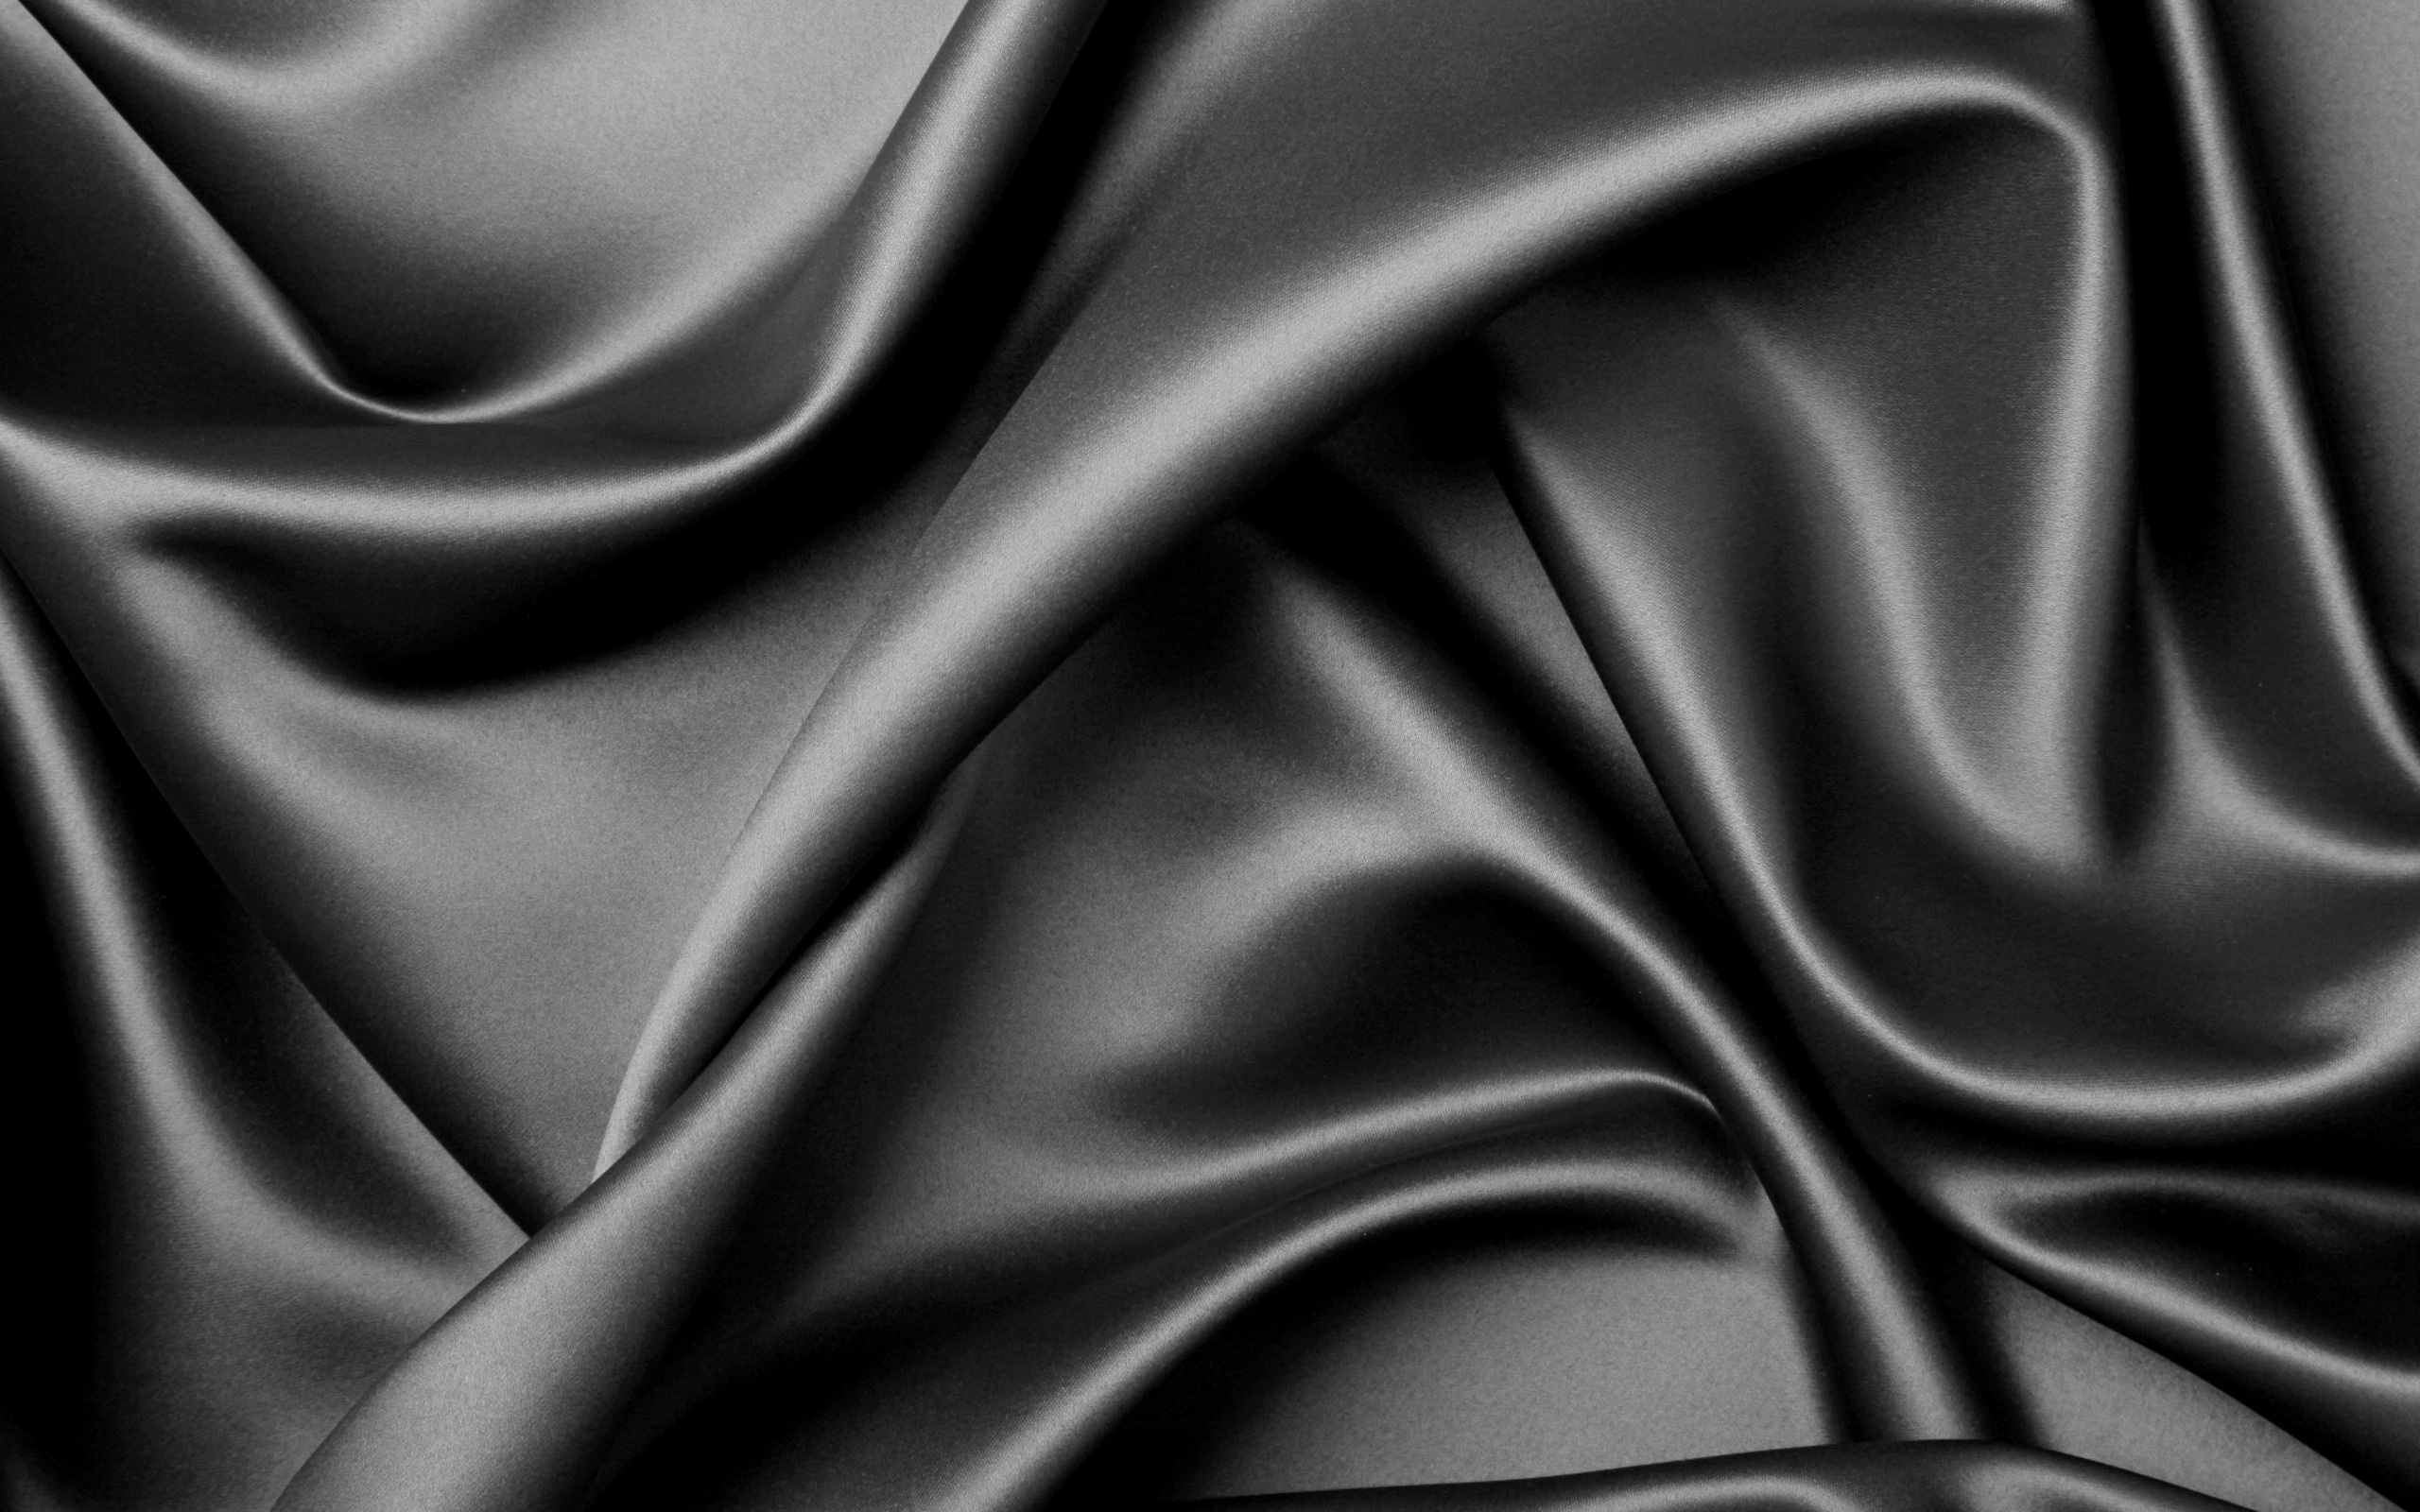 Black Velvet D Abstract Wide Hd Desktop Wallpaper